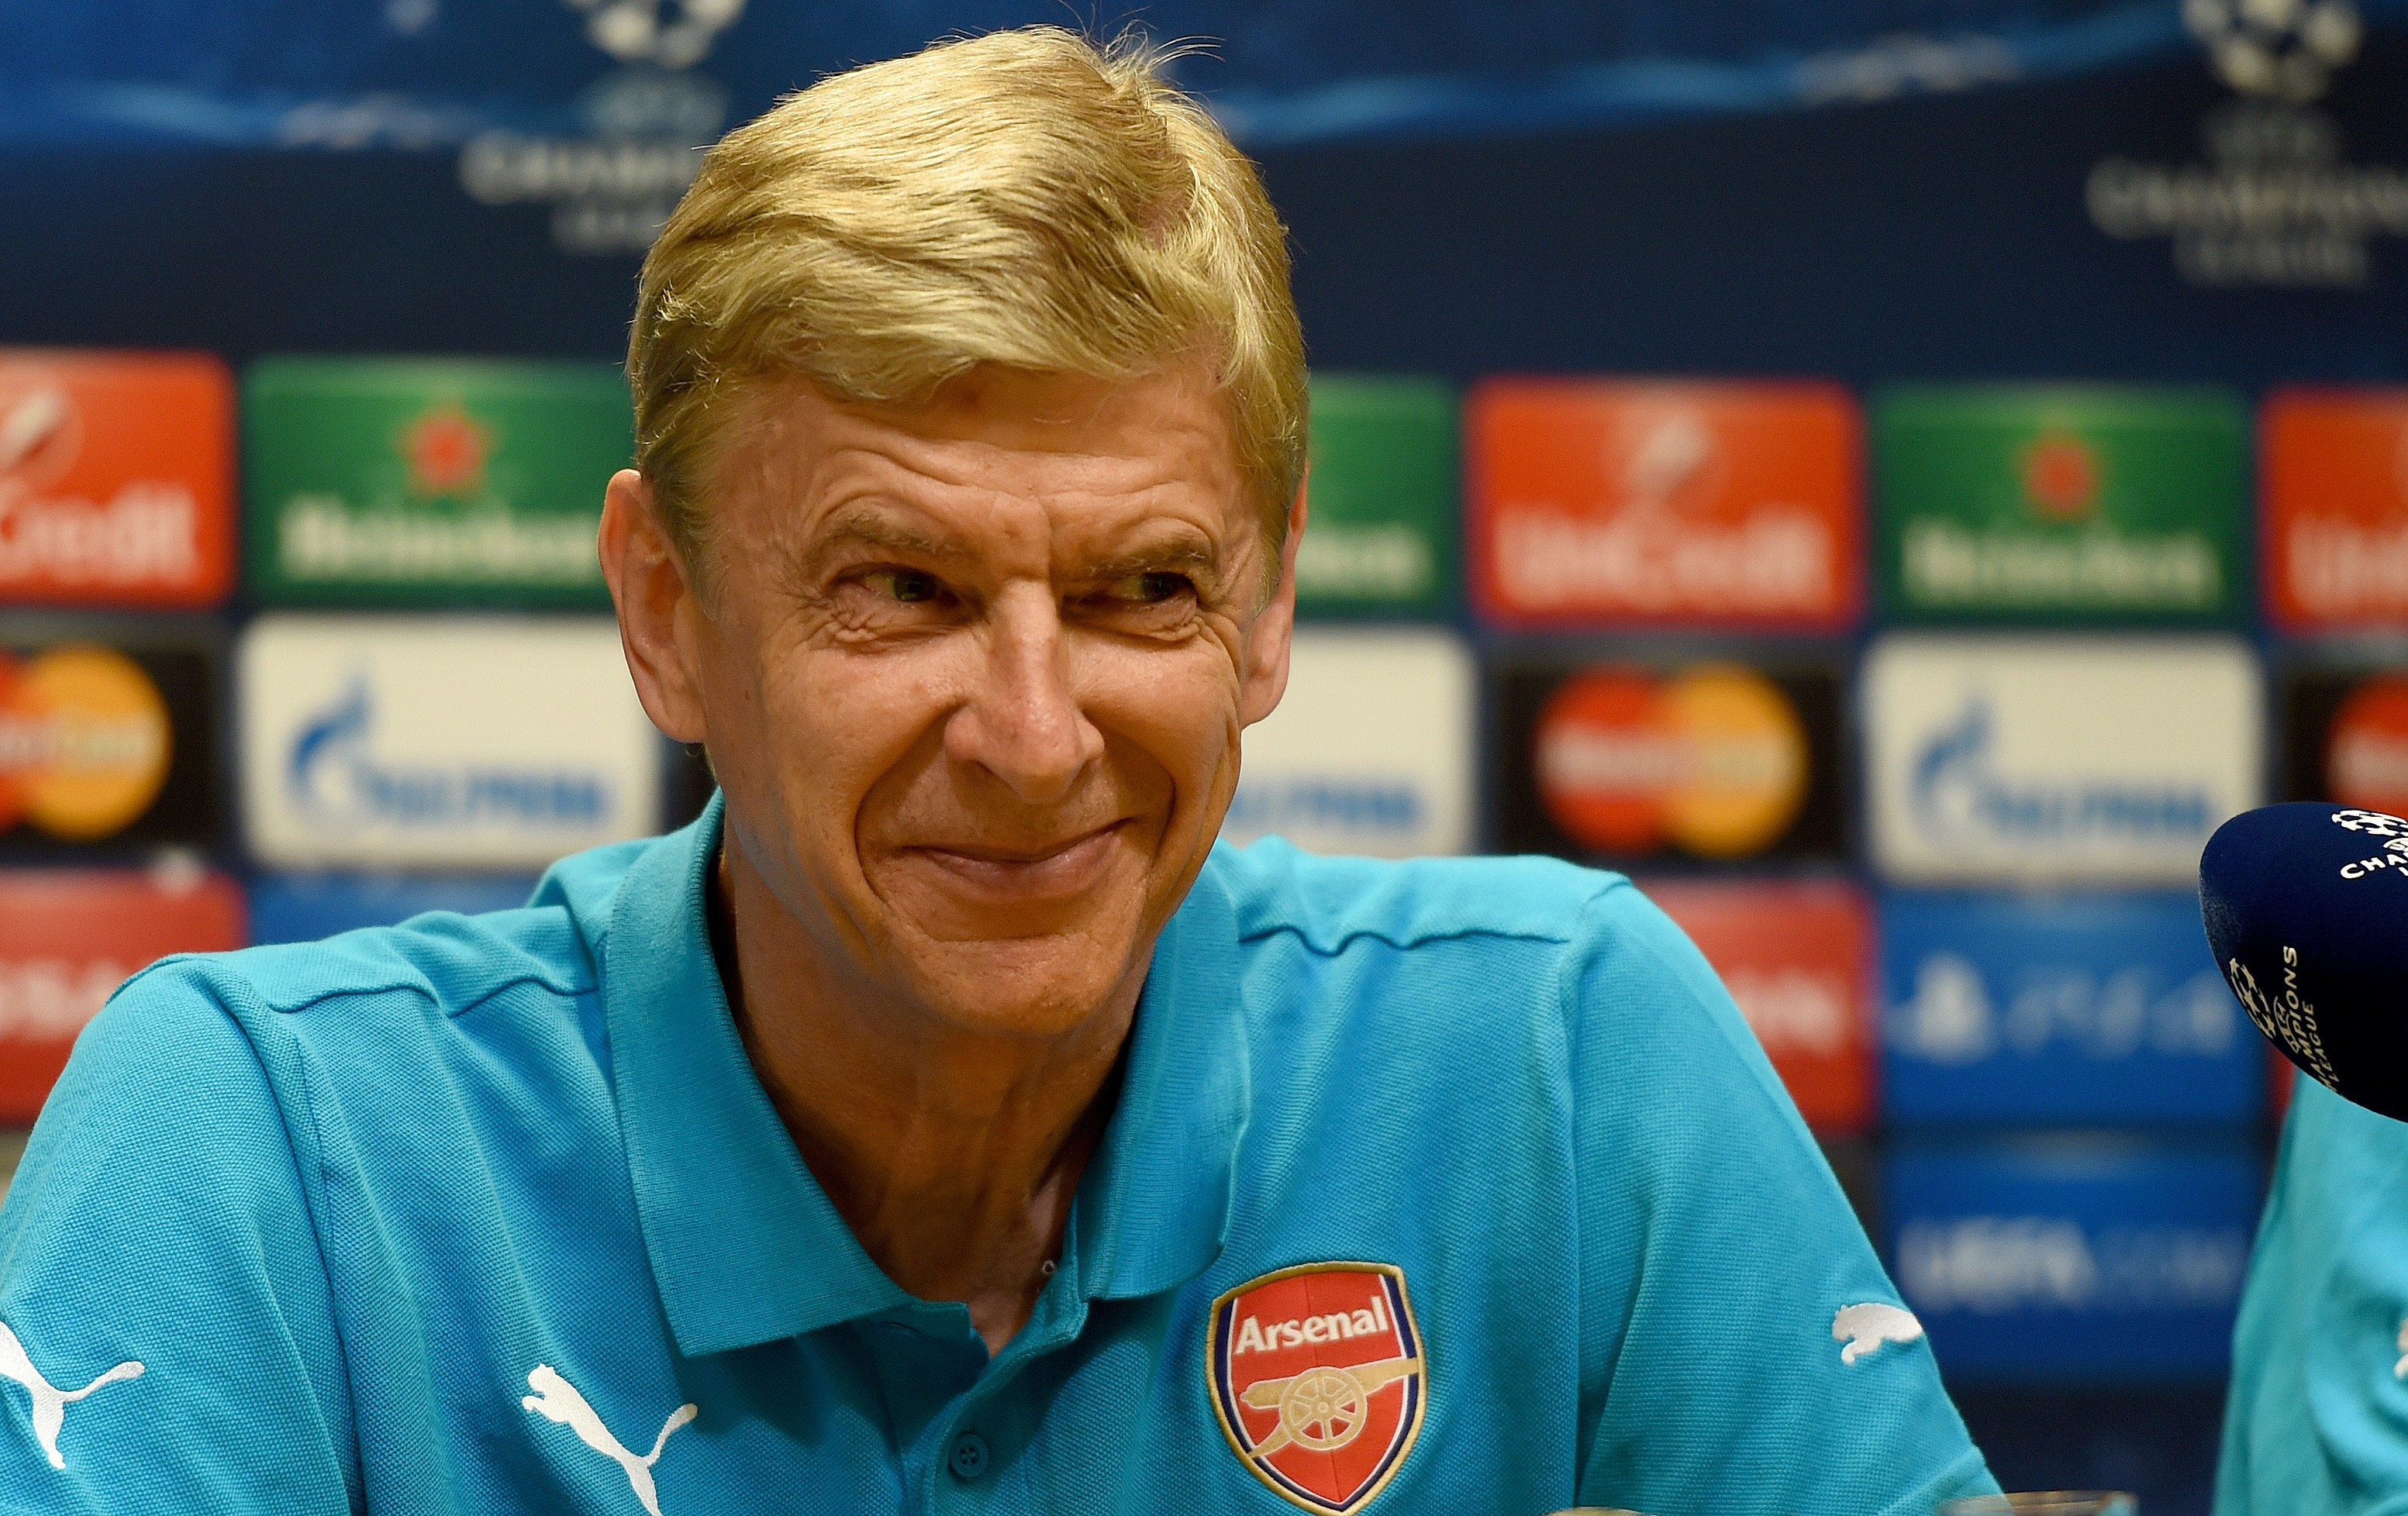 Wenger claims Petr Cech and David Ospina are both world class